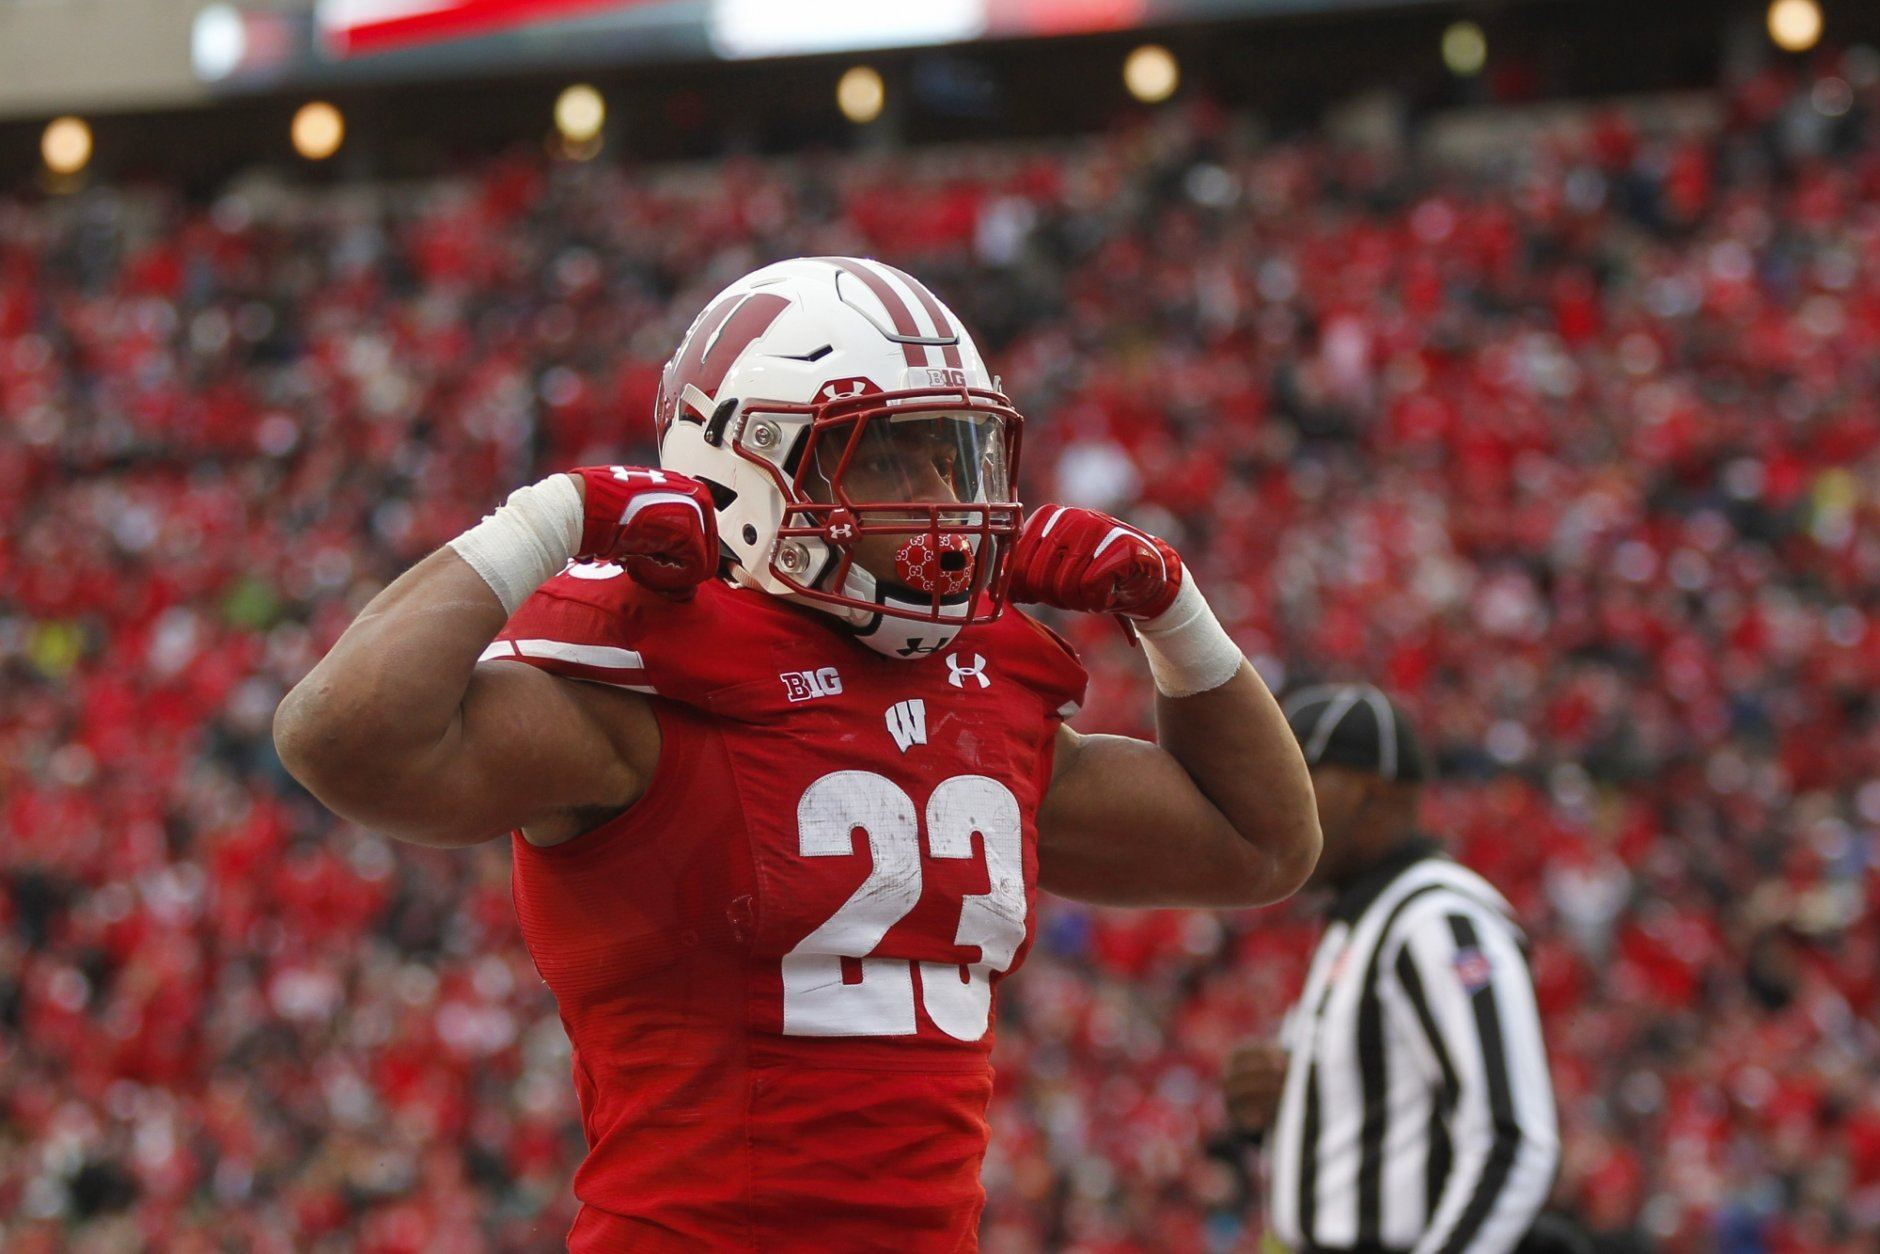 <p><strong>No. 13 Wisconsin (6-2):</strong> Win out, including vs. Iowa and at Minnesota, have Minnesota lose an additional game, win Big 10 title</p> <p>Even if everything goes right for Wisconsin, coming off consecutive losses, there's no guarantee this gets them in. But it's at least possible. A rematch win over an undefeated Ohio State in the B1G title game would go a long way toward making voters forget about their 38-7 loss (not to mention the 24-23 face plant at Illinois).</p>